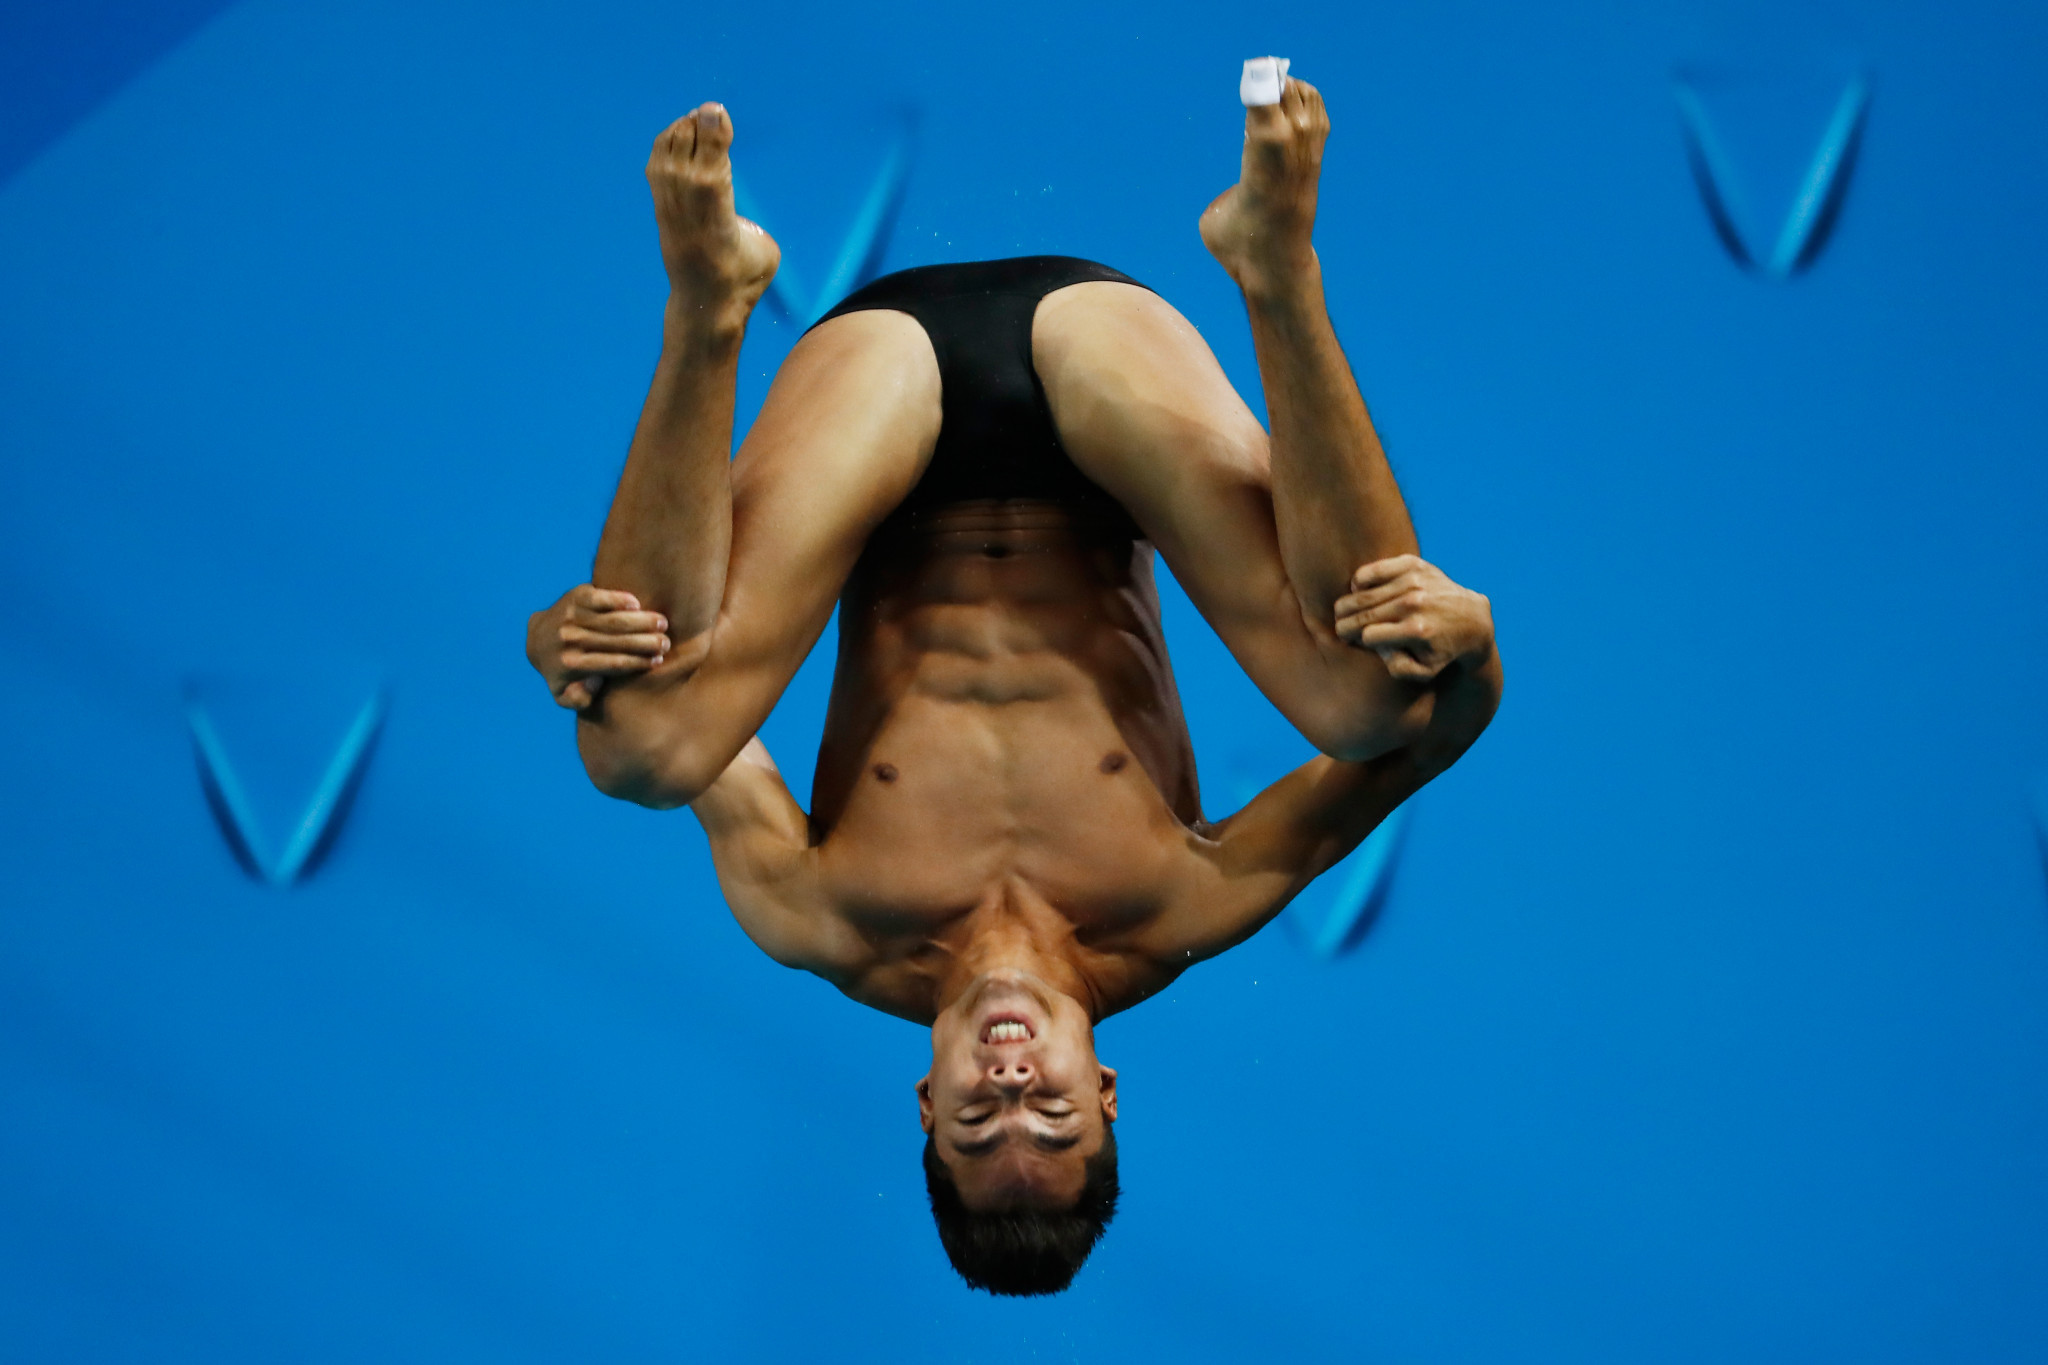 Colombia's Sebastián Morales triumphed in the men's three metres competition ©Getty Images